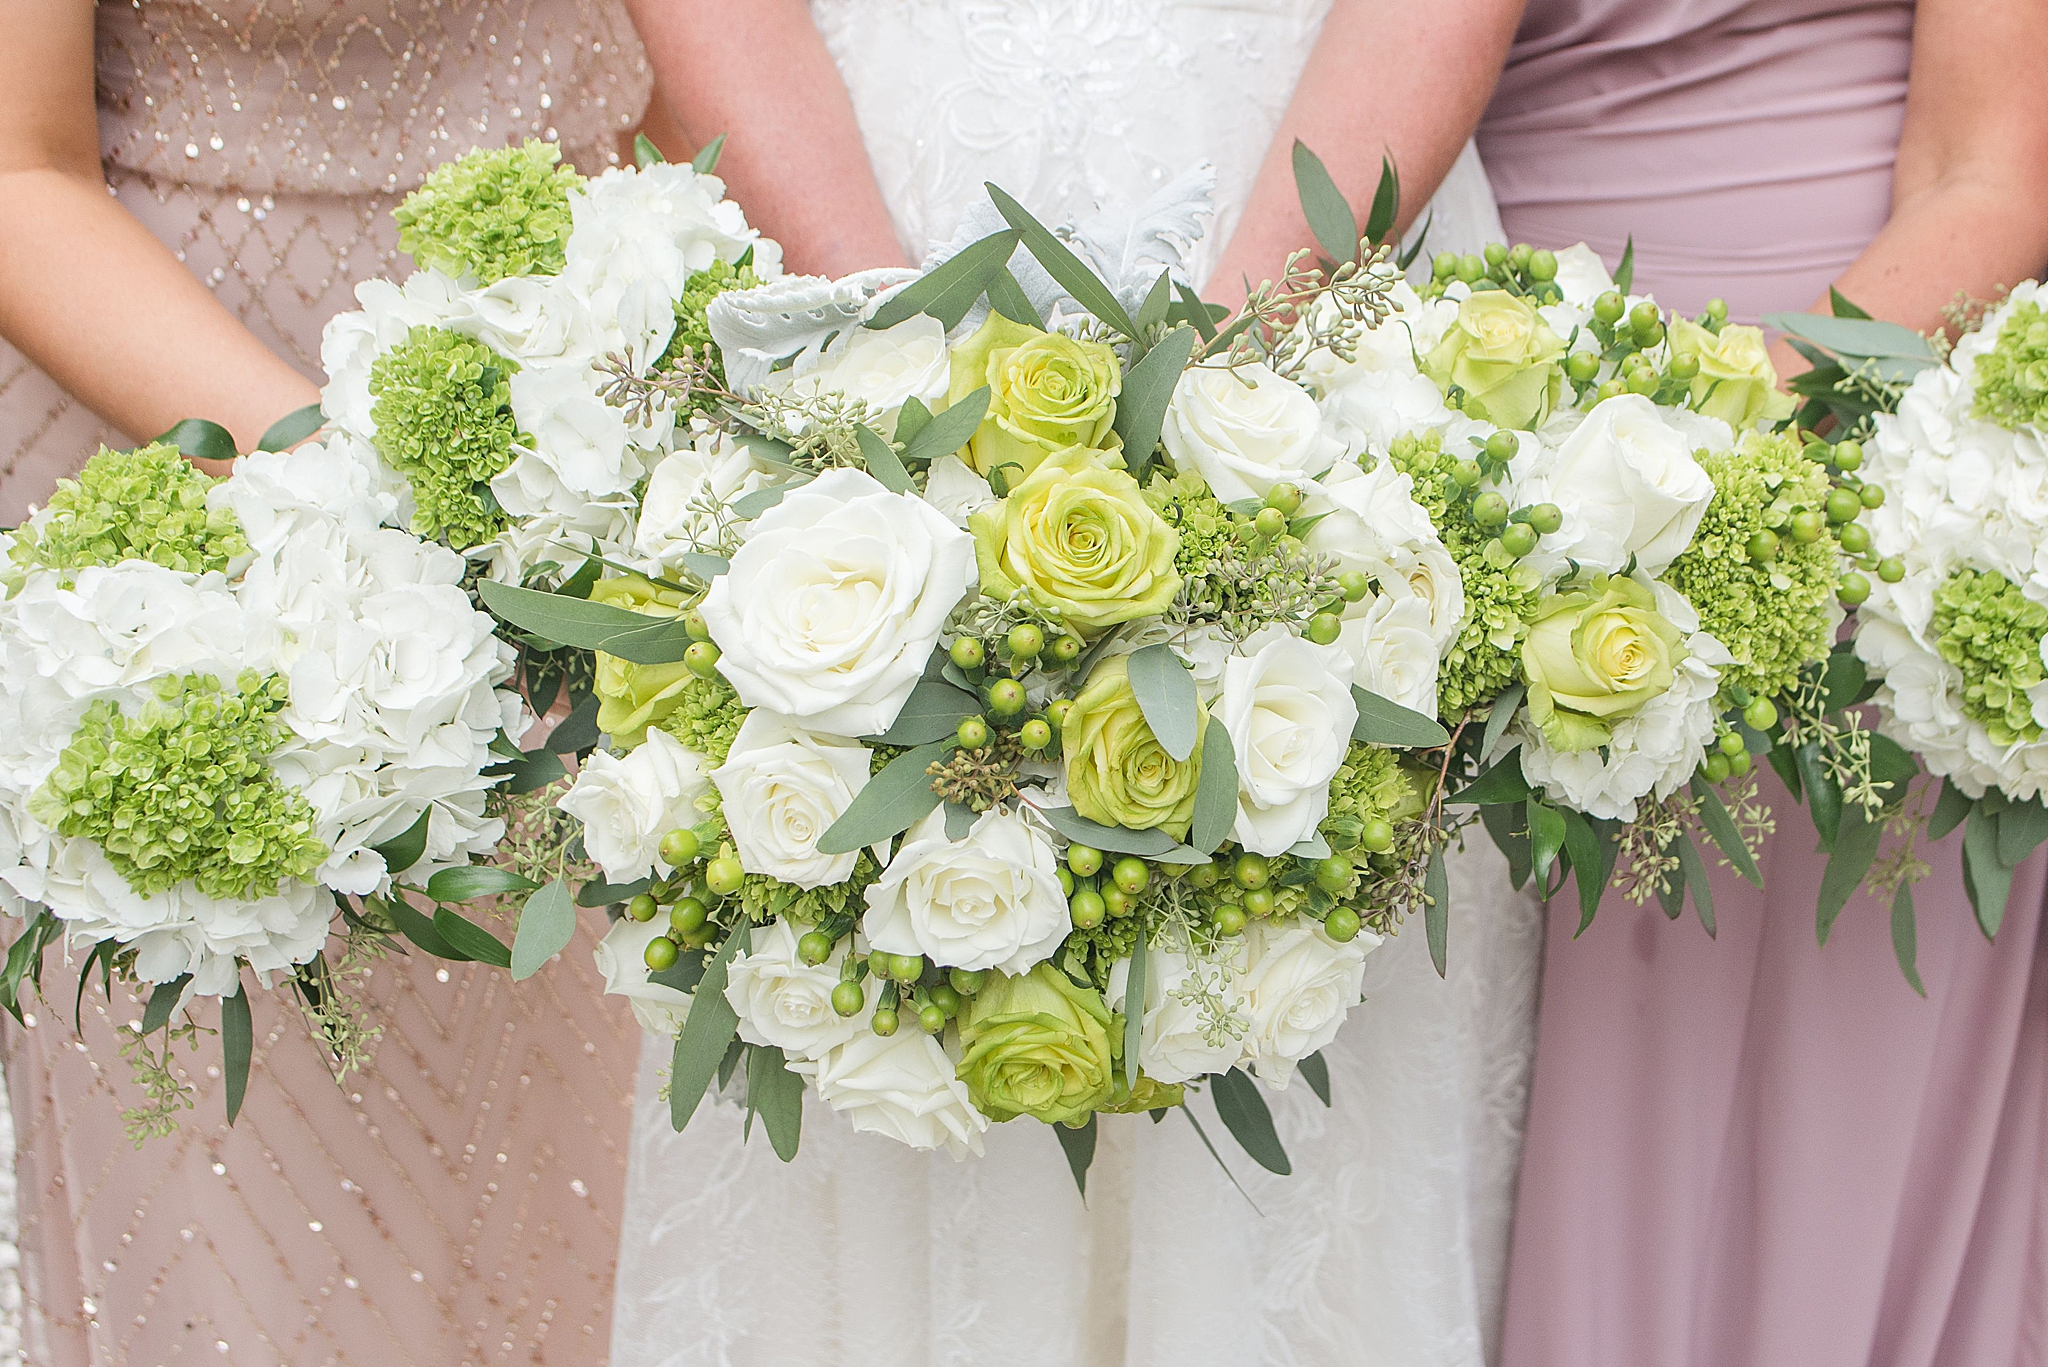 bride and bridesmaids hold bouquet of white and green flowers